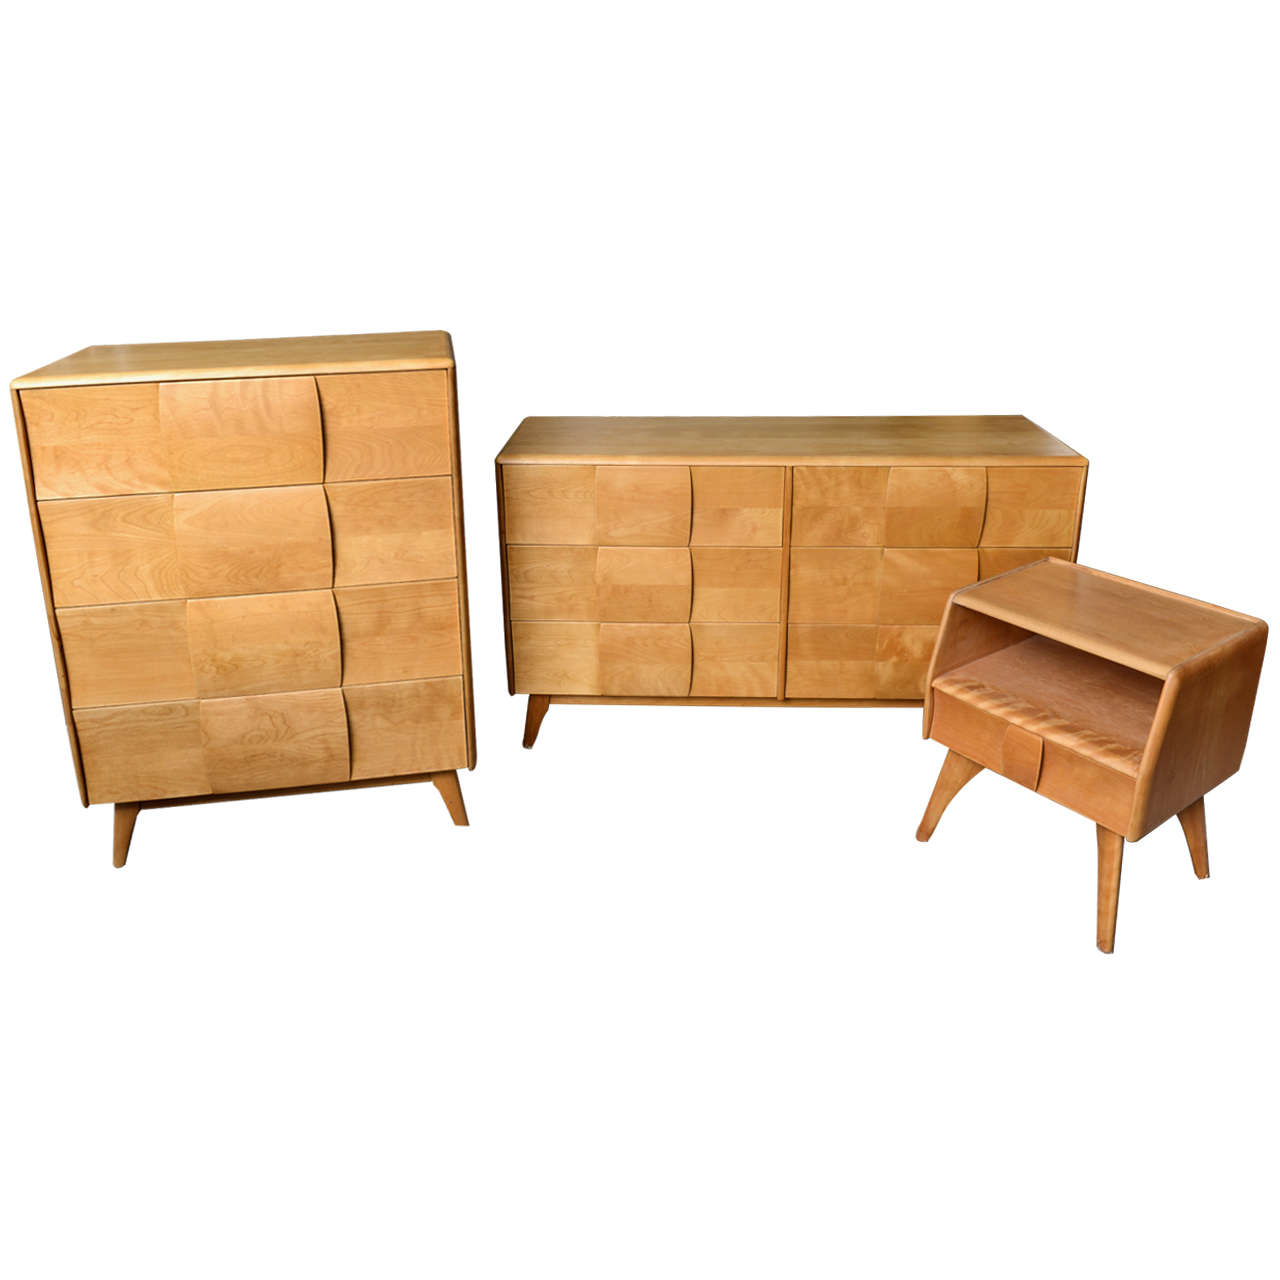 this heywood wakefield bedroom set is no longer available